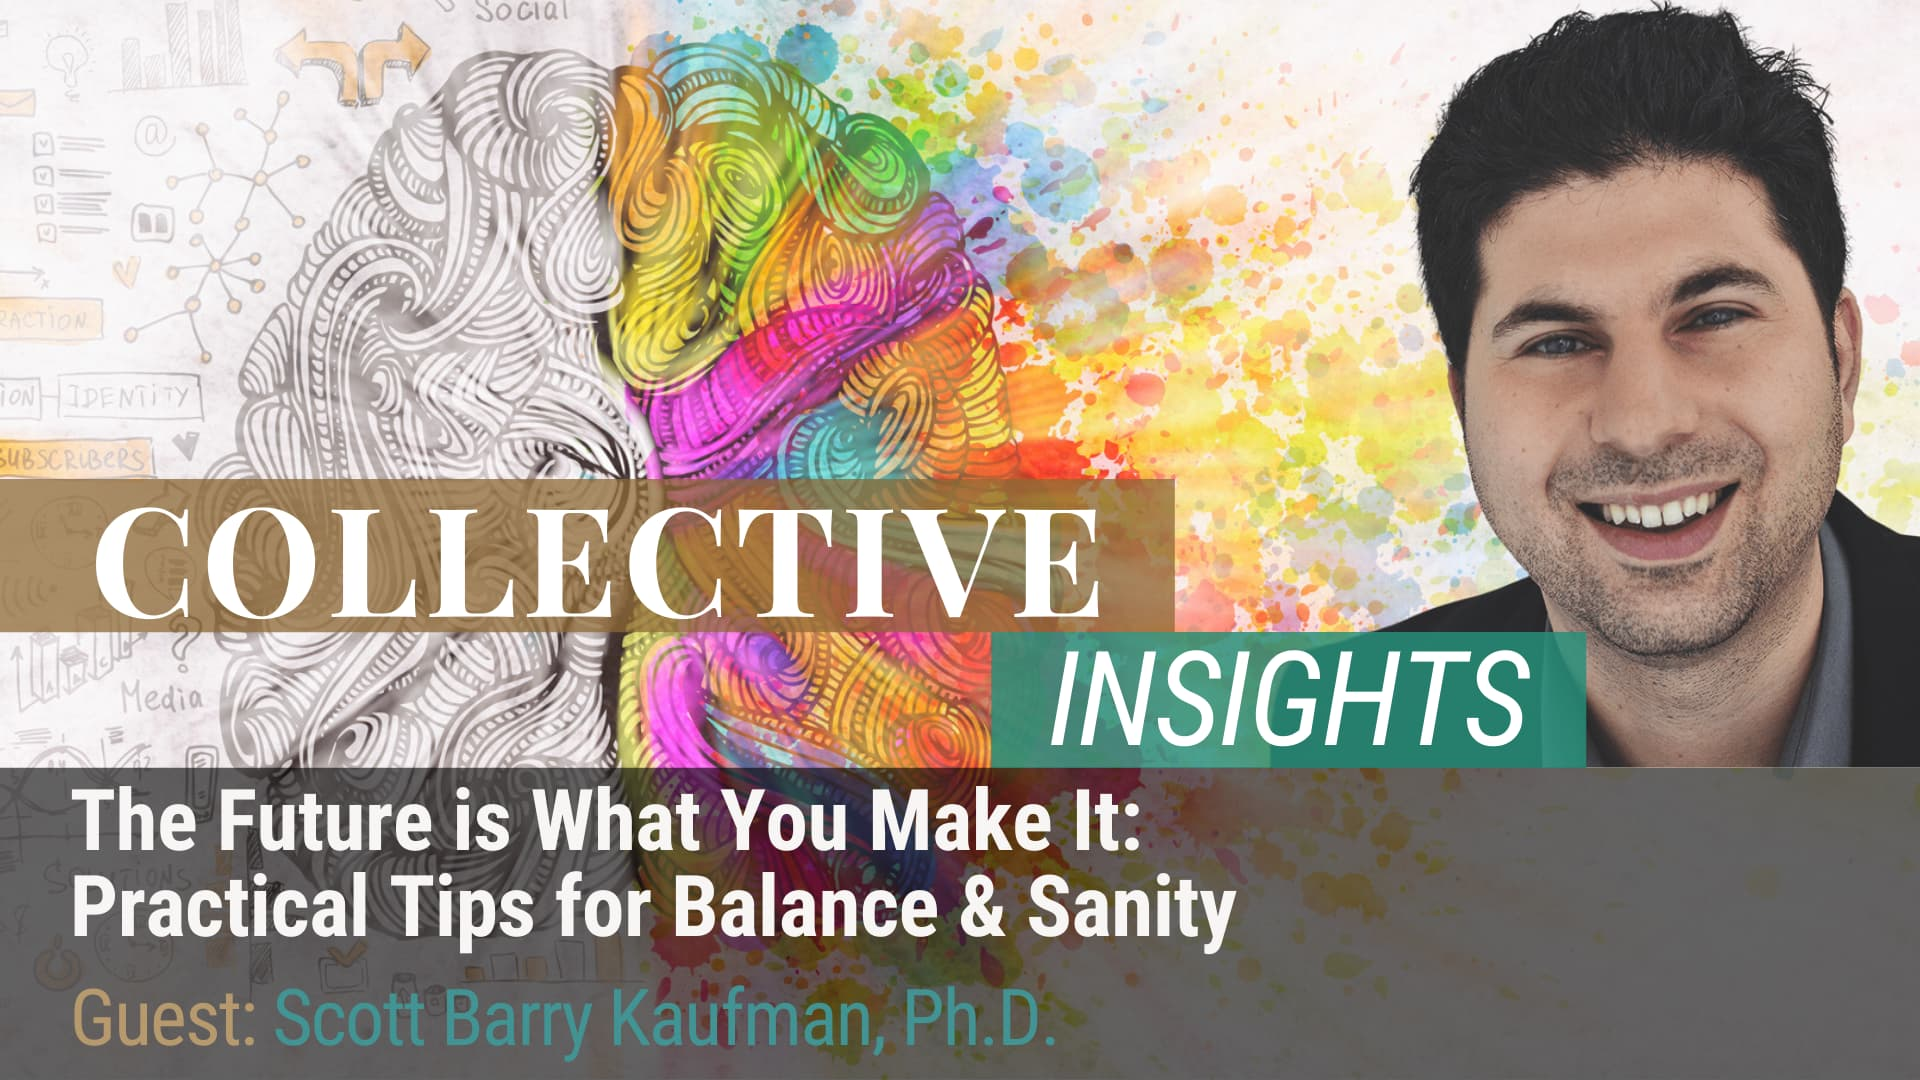 The Future Is What You Make It: Practical Tips for Balance & Sanity